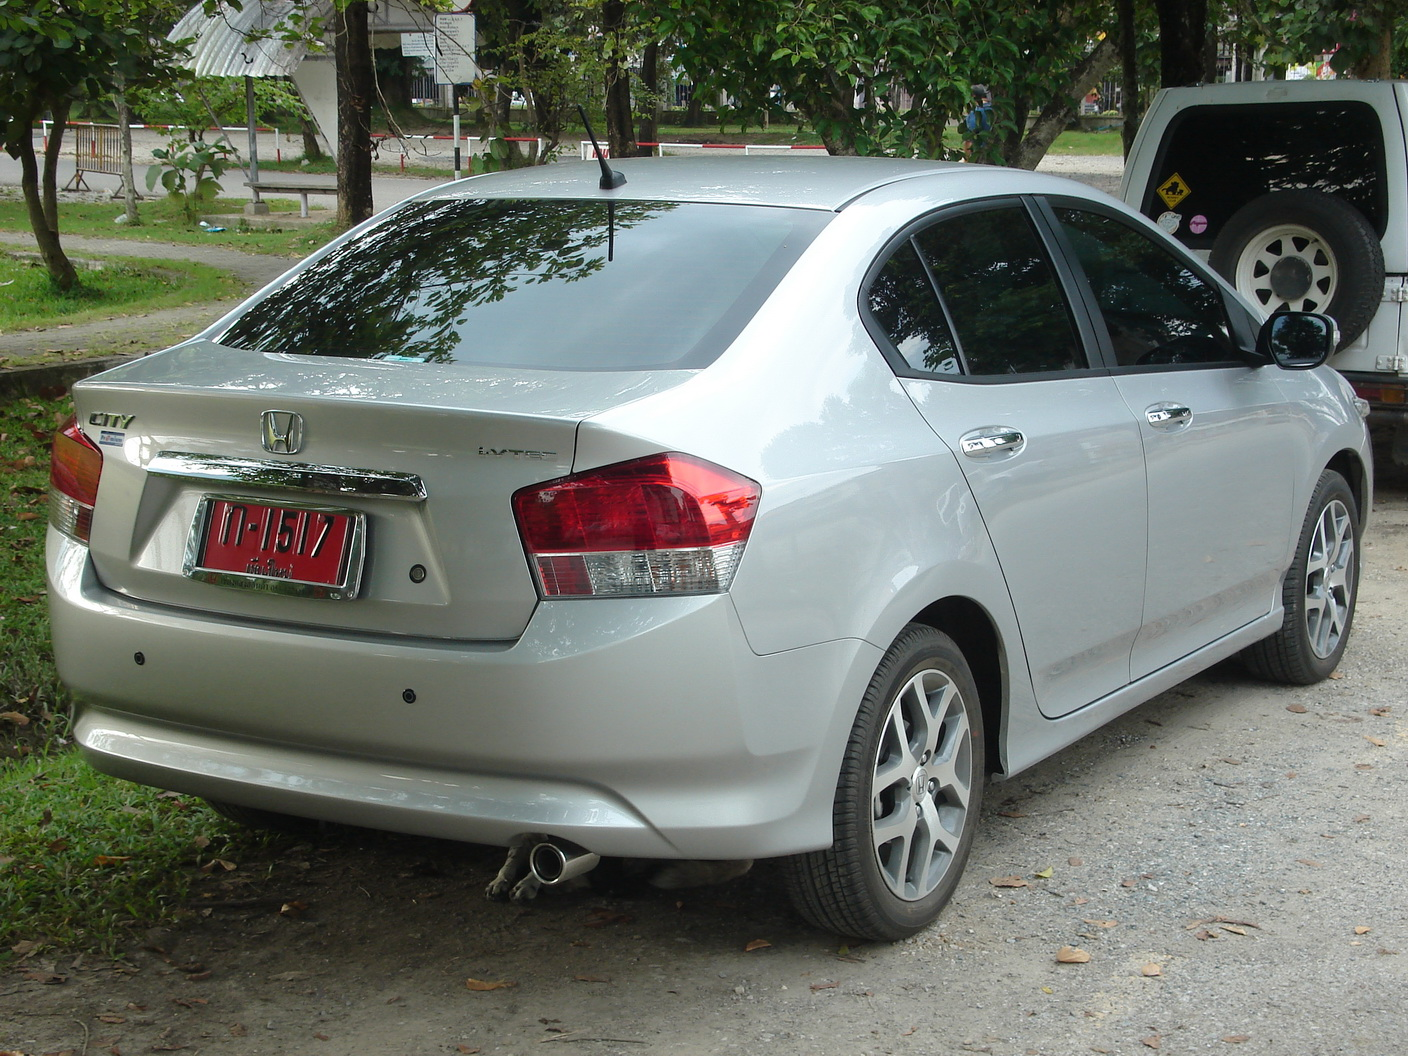 Honda City rear view.